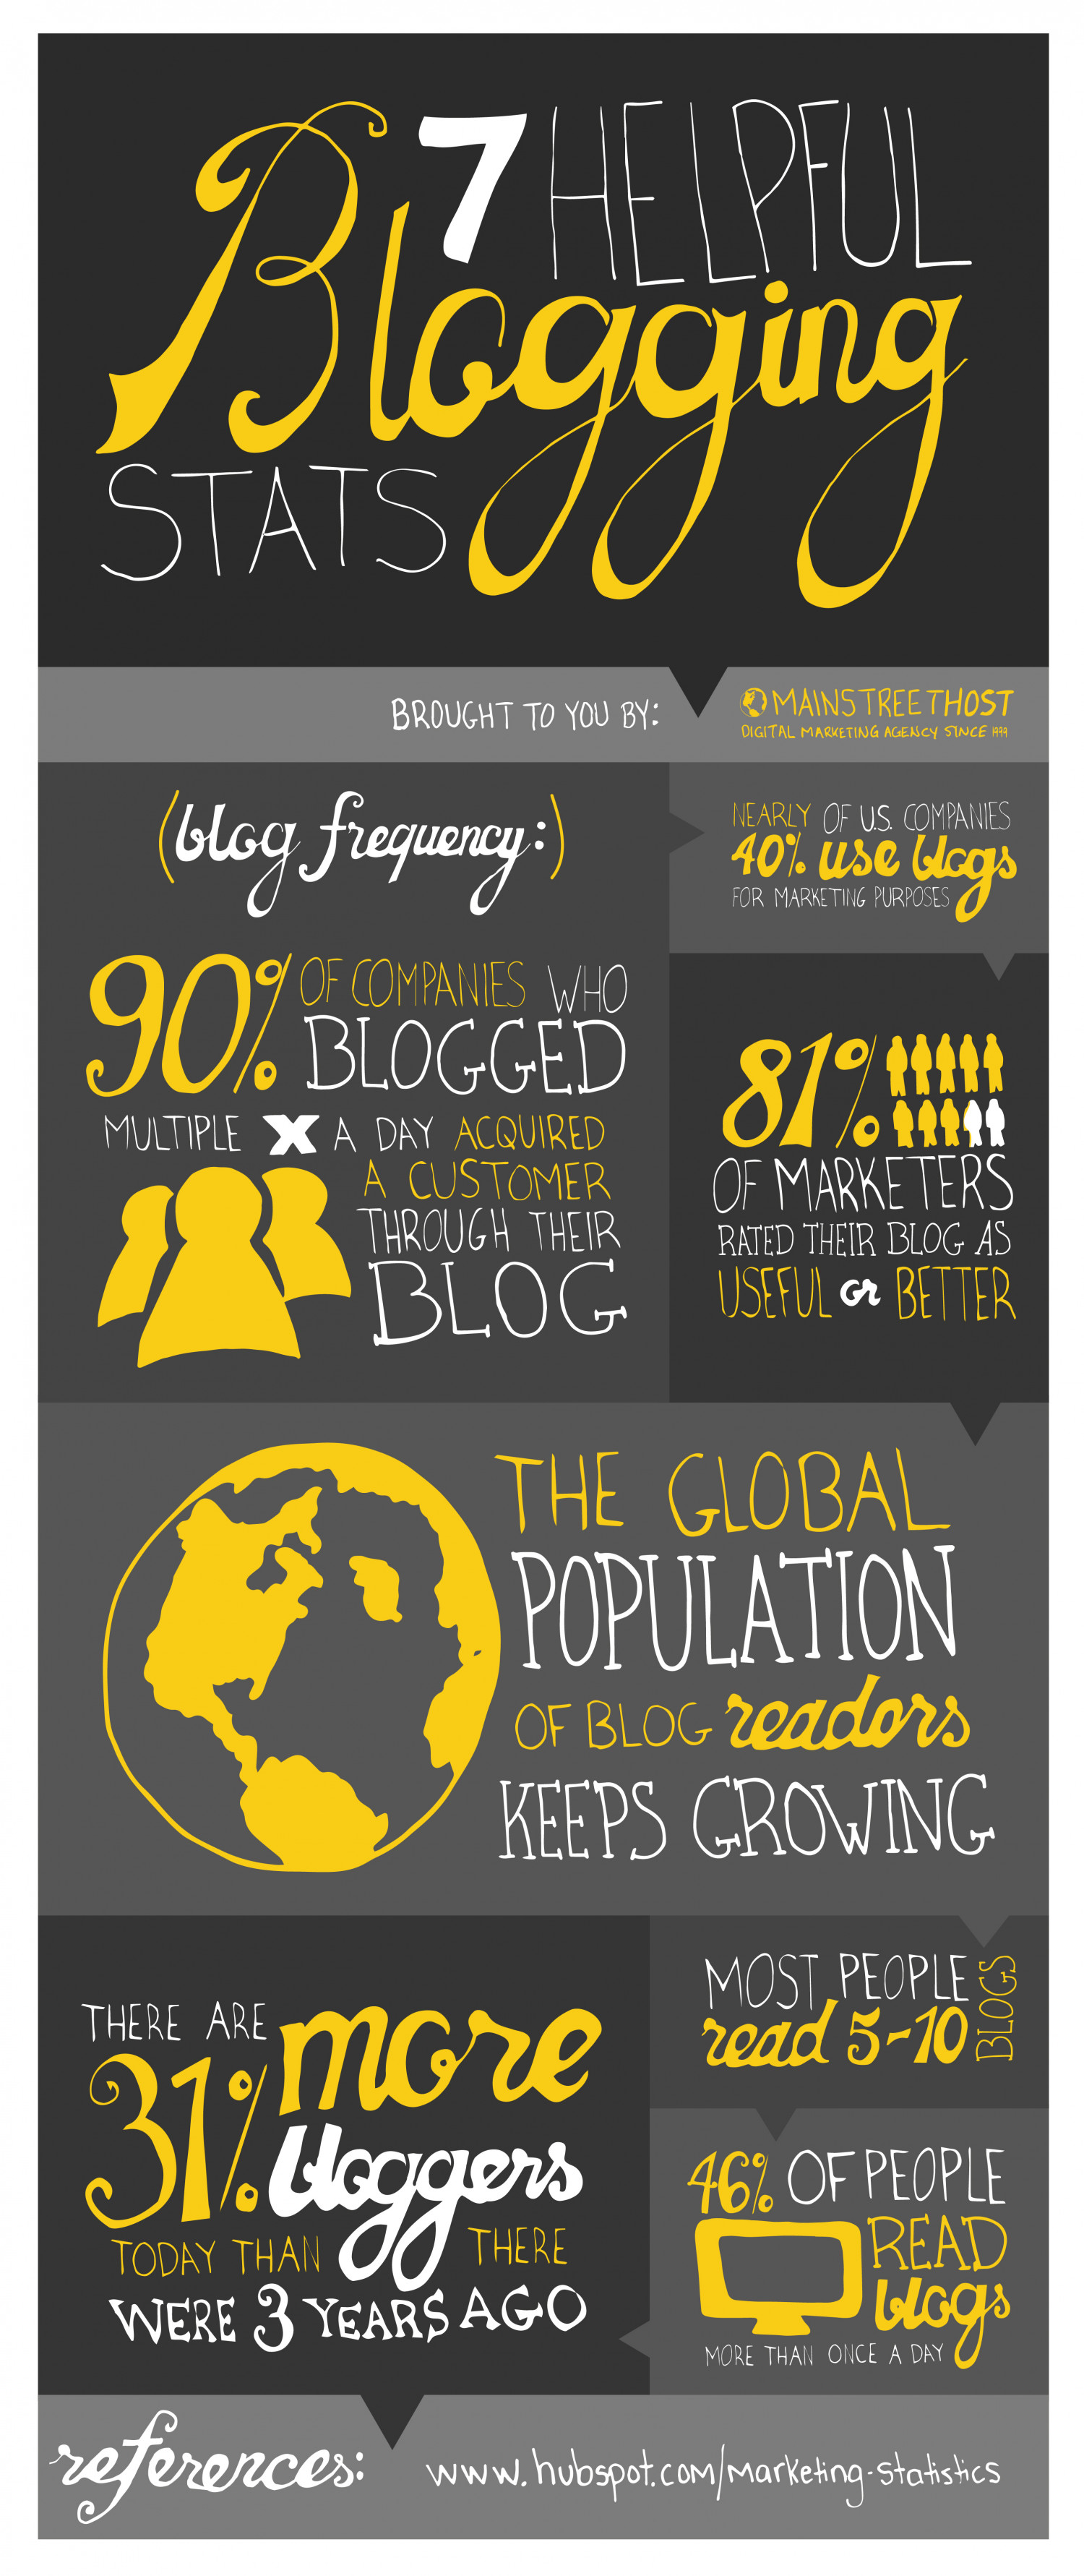 7 Helpful Blogging Stats Infographic